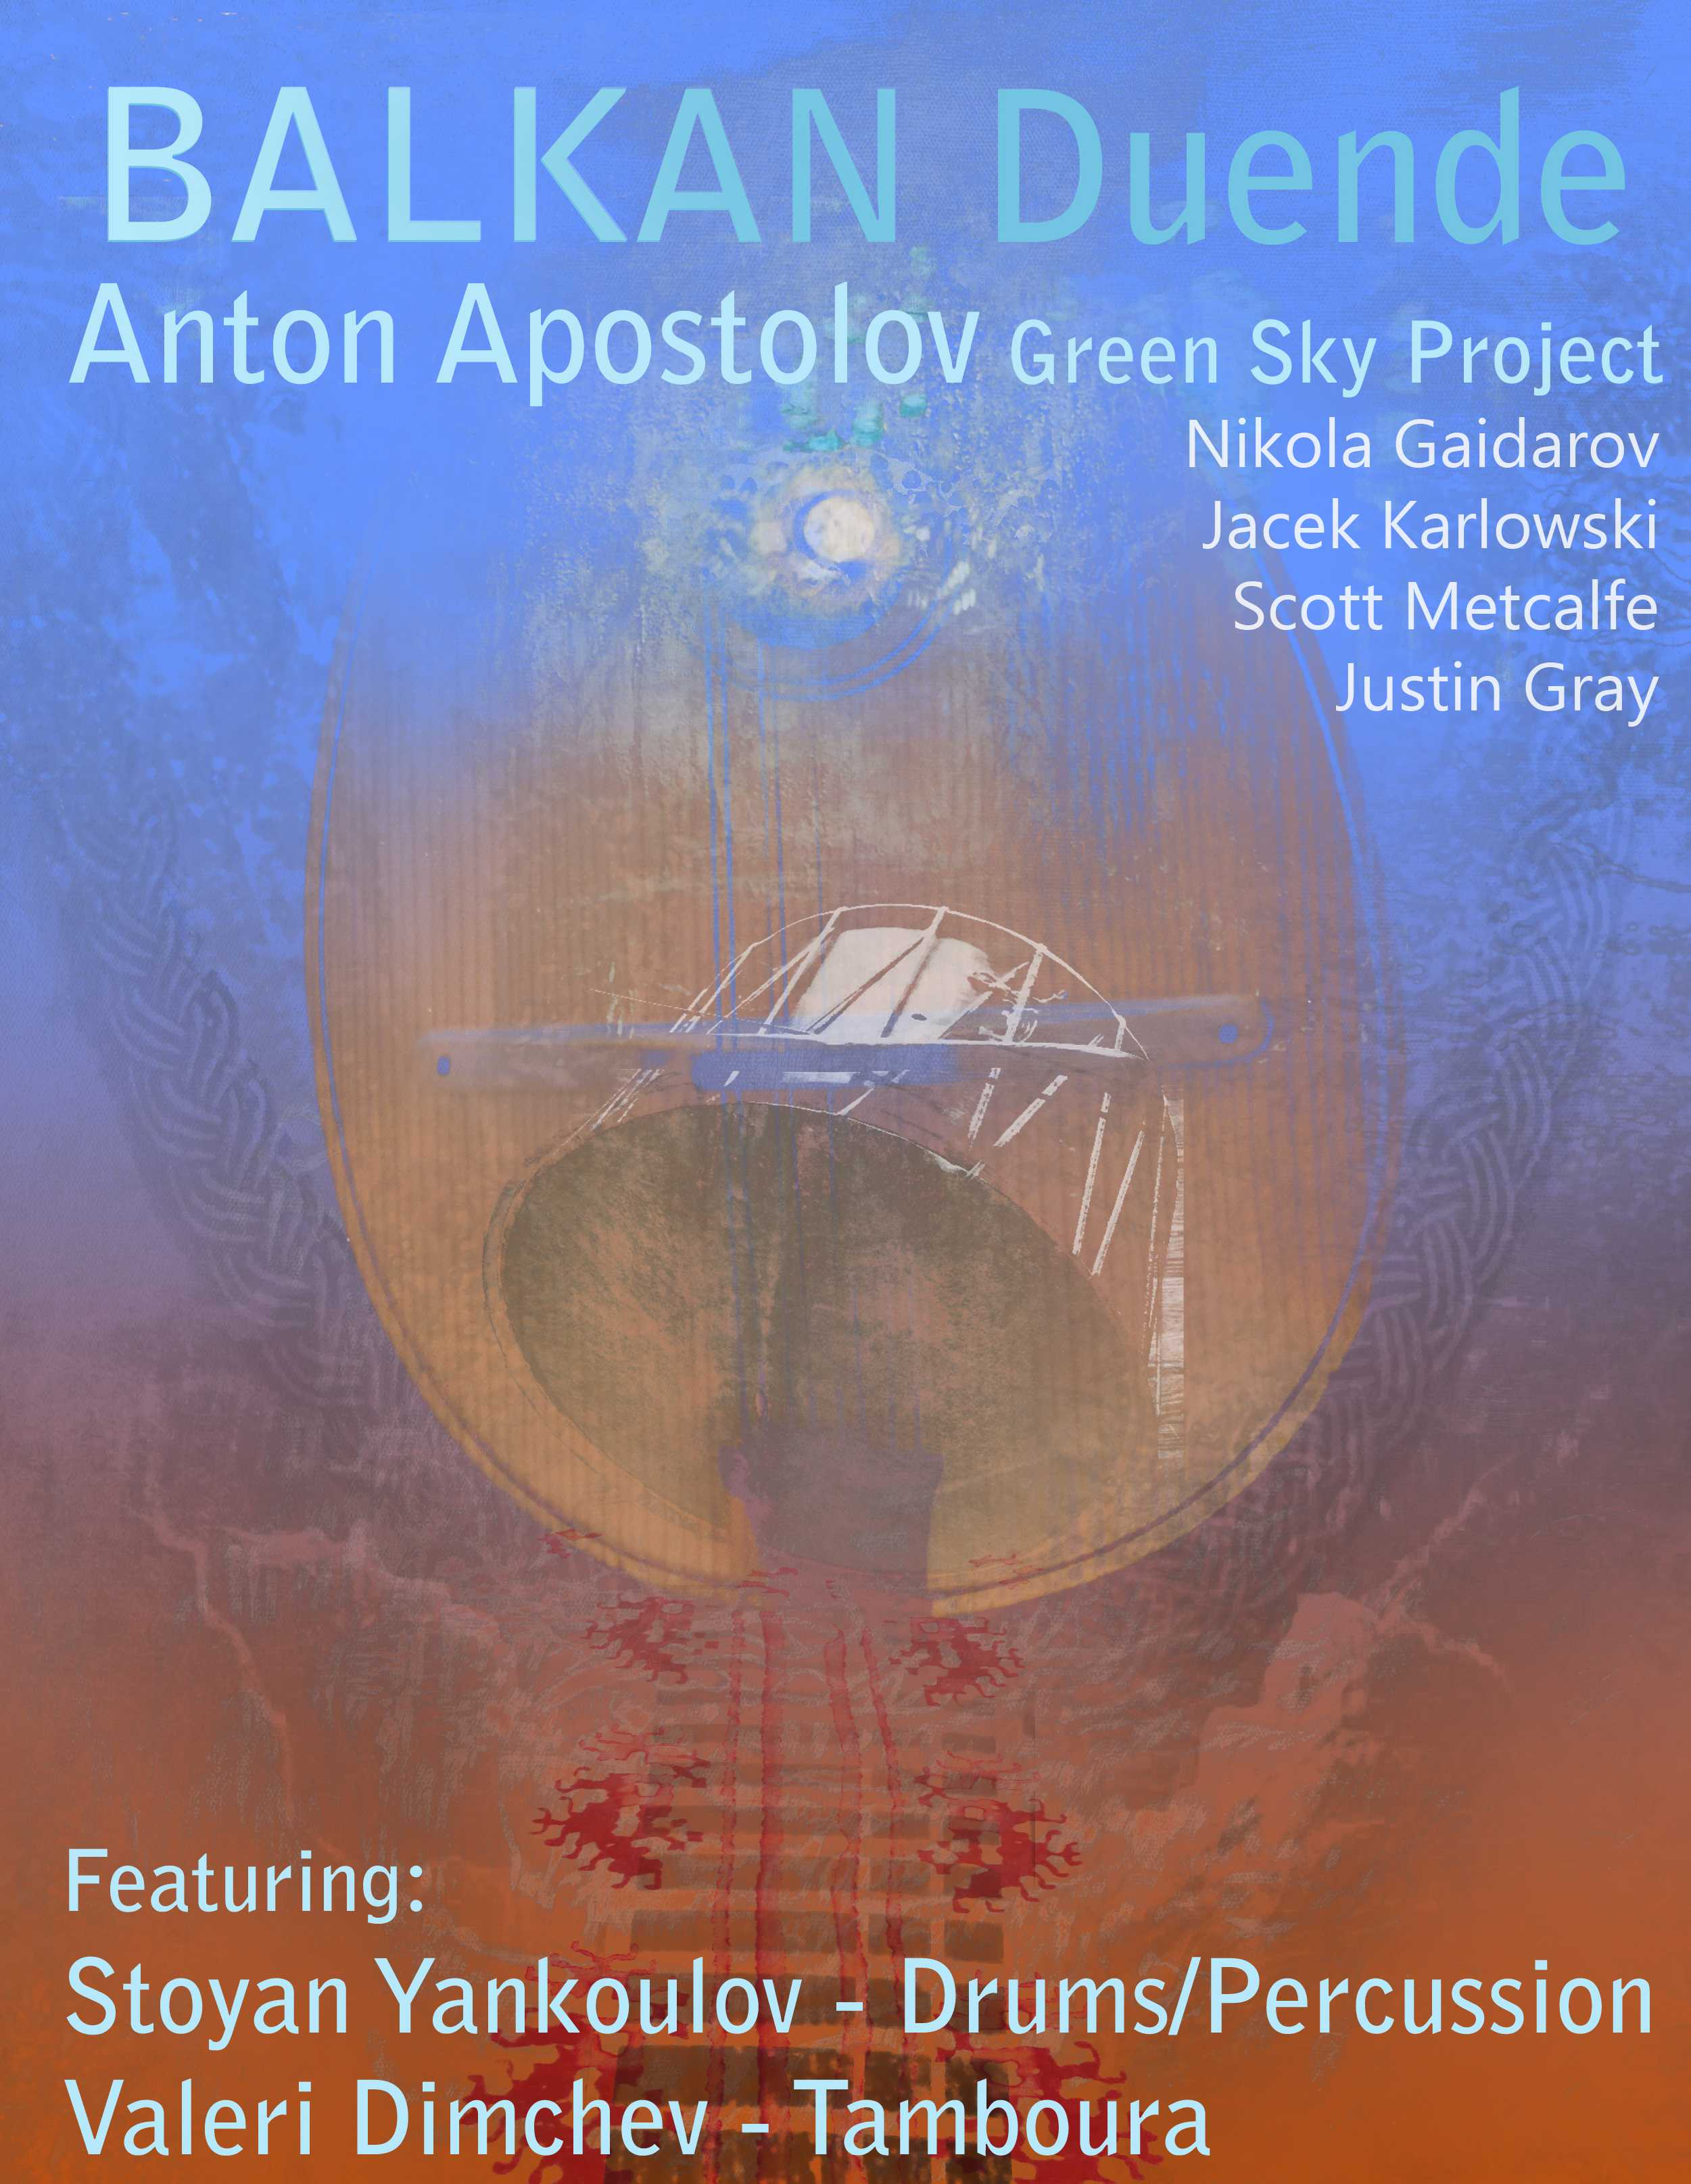 Green Sky Project